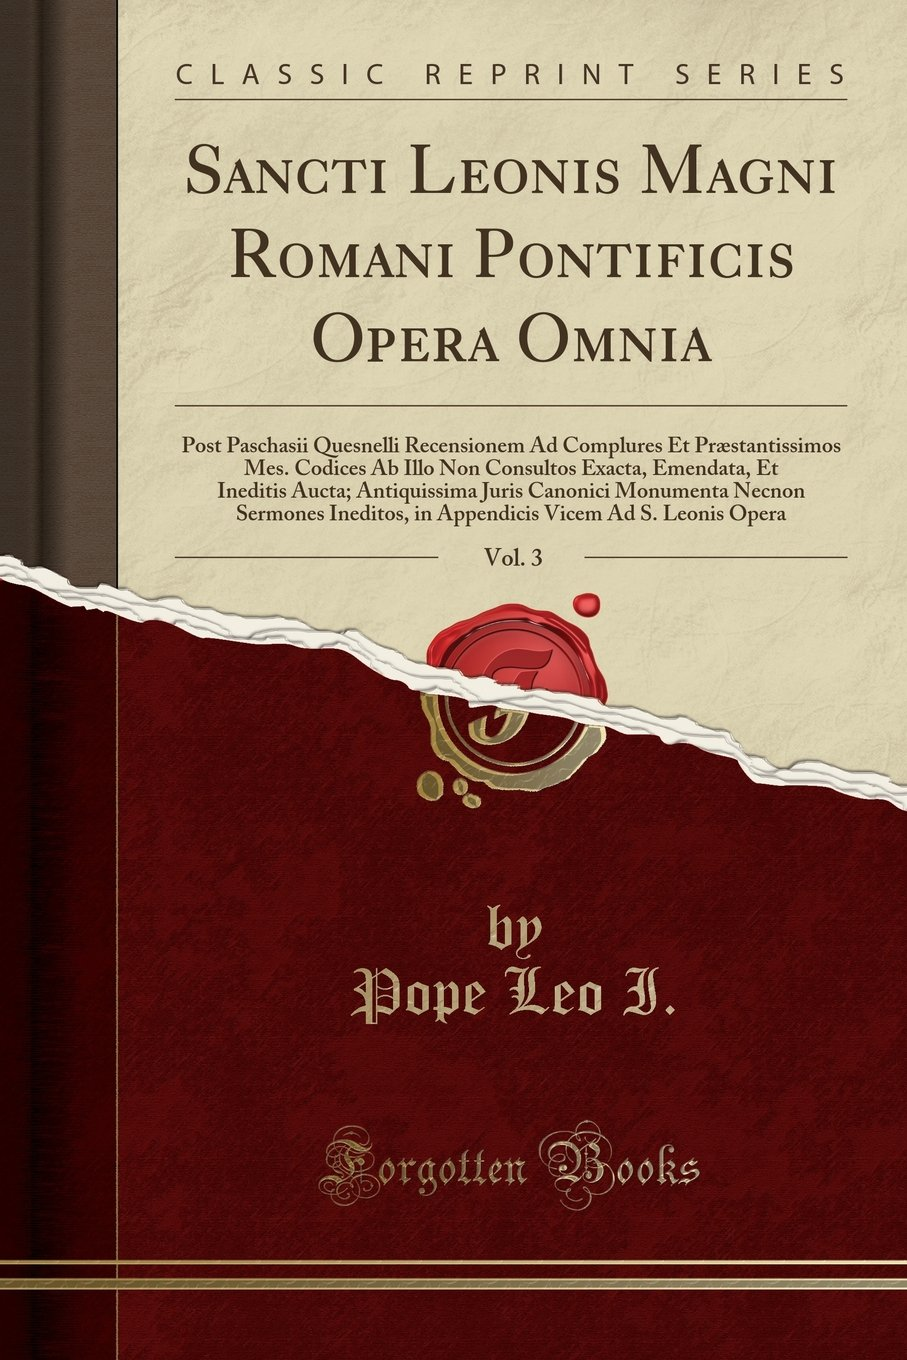 Download Sancti Leonis Magni Romani Pontificis Opera Omnia, Vol. 3: Post Paschasii Quesnelli Recensionem Ad Complures Et Præstantissimos Mes. Codices Ab Illo ... Monumenta Necnon Sermones (Latin Edition) ebook